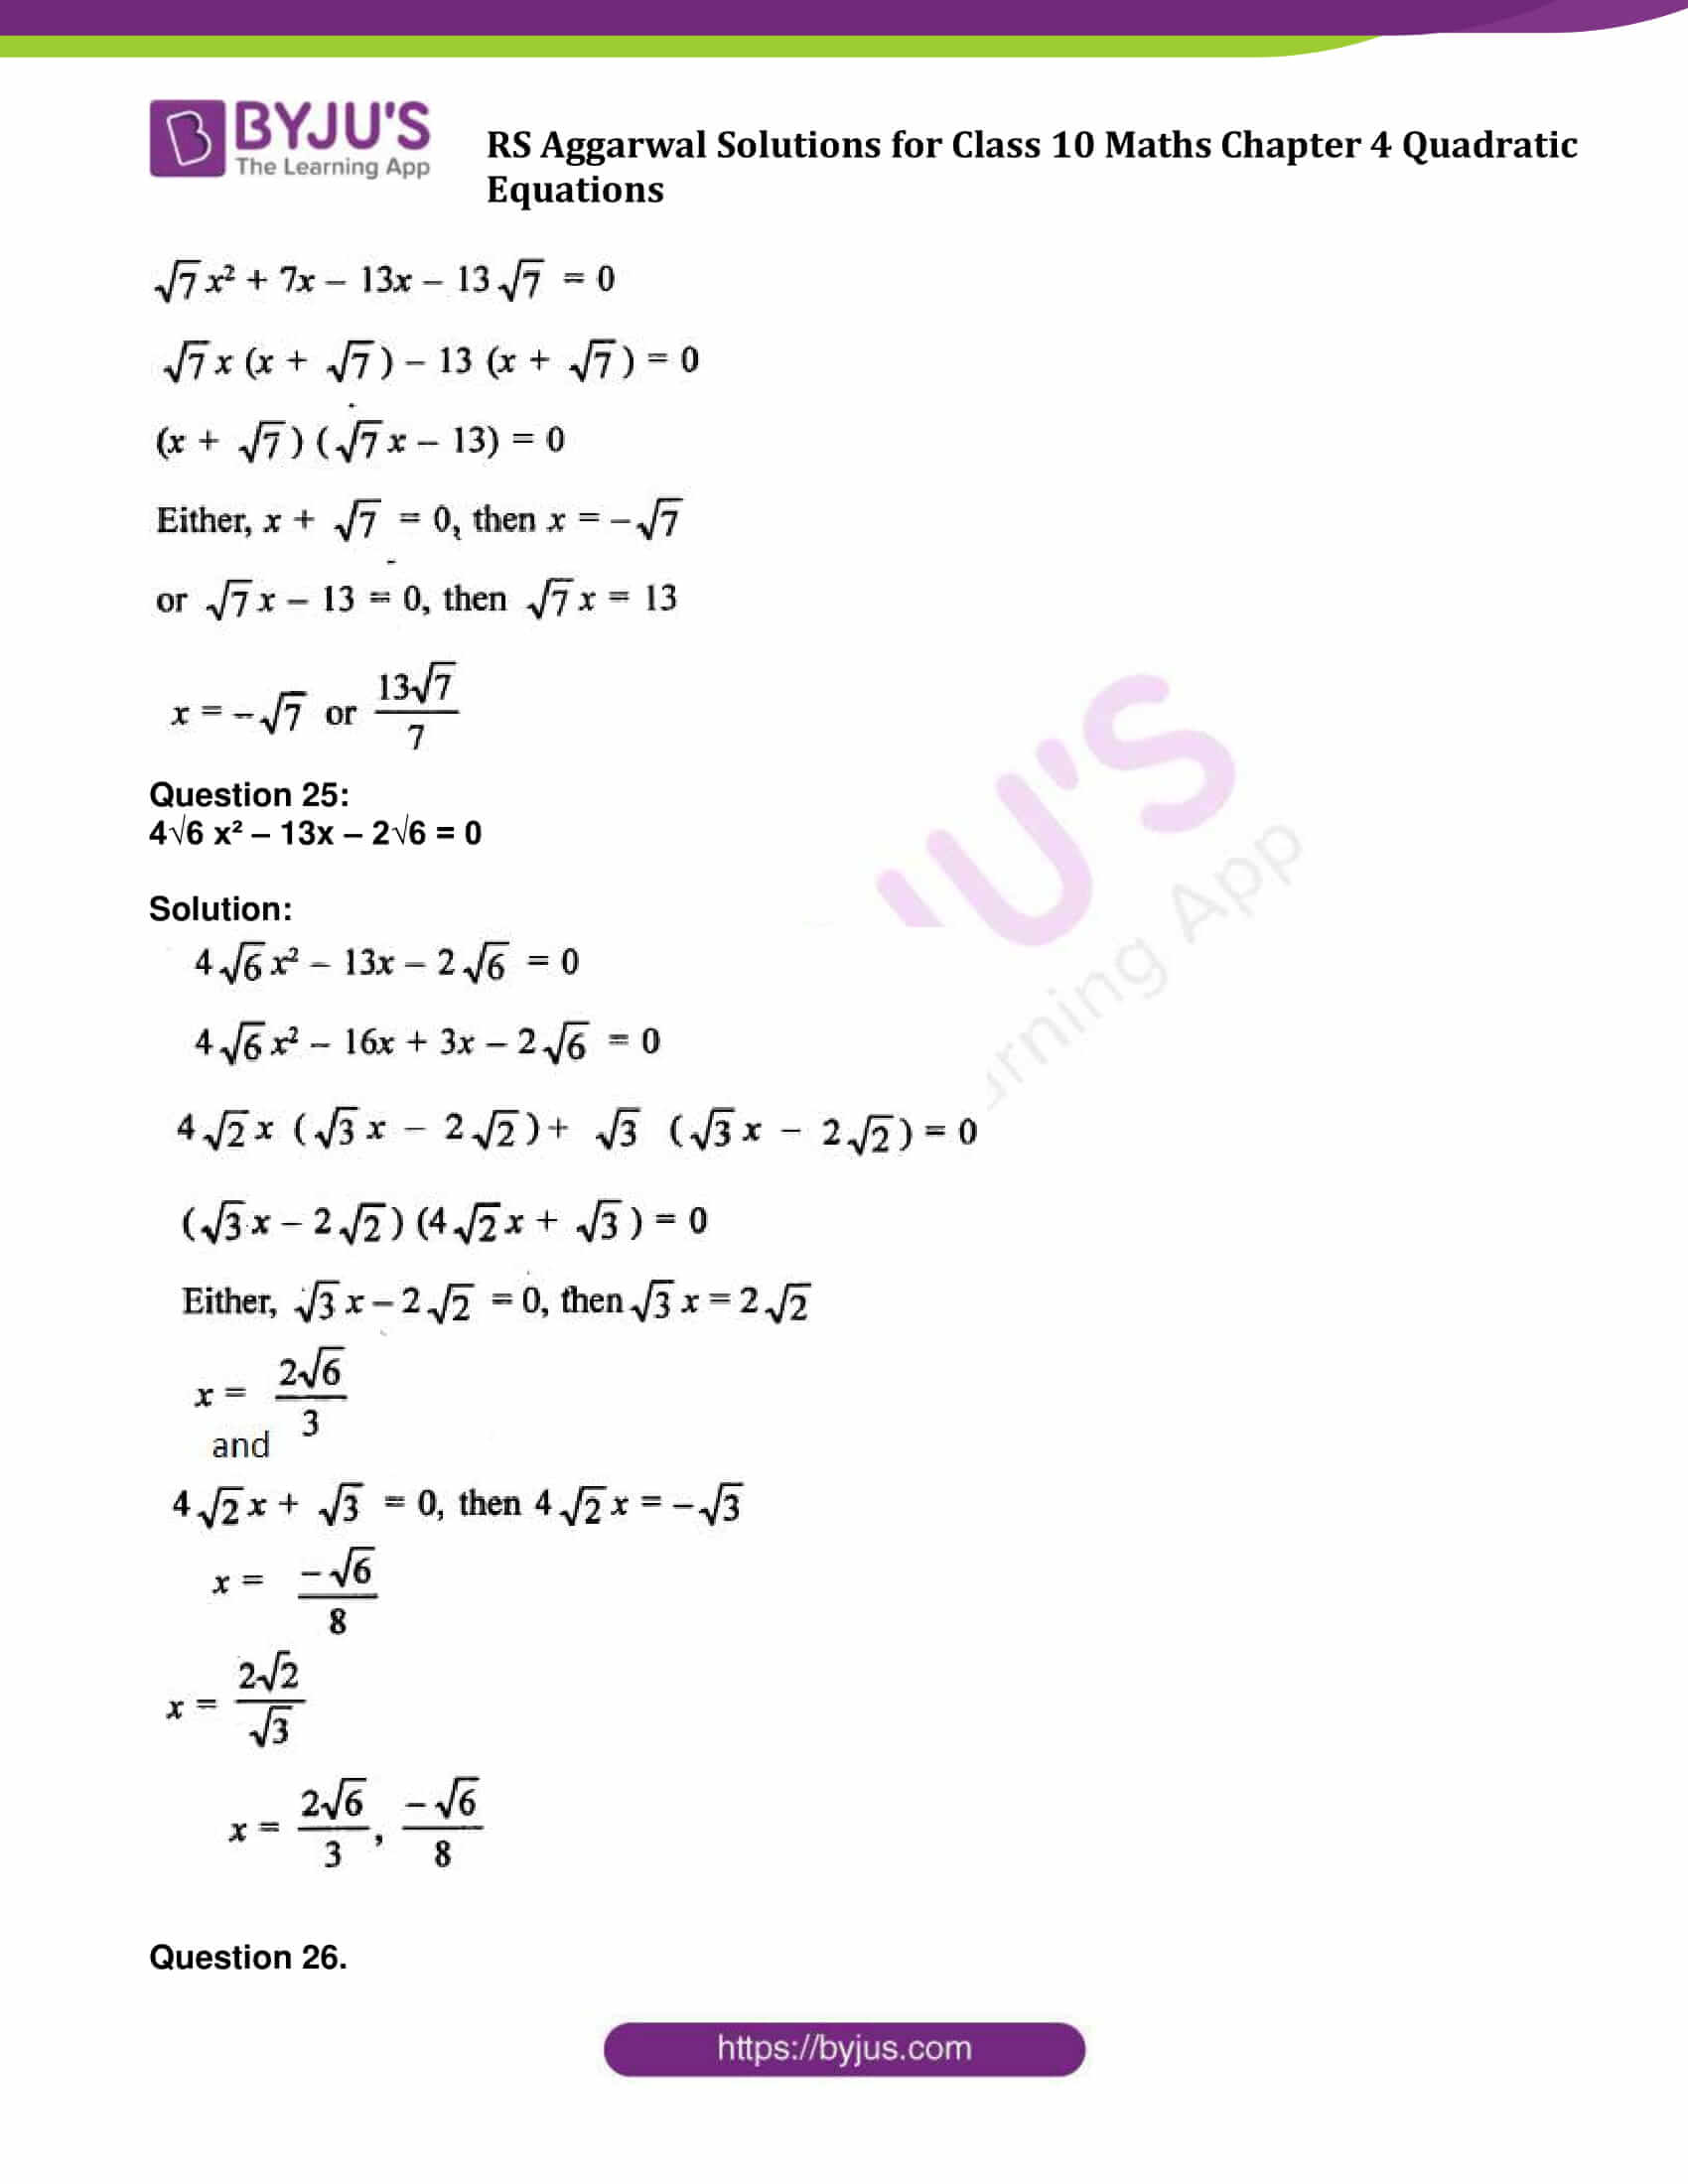 RS Aggarwal Sol class 10 Maths Chapter 4A